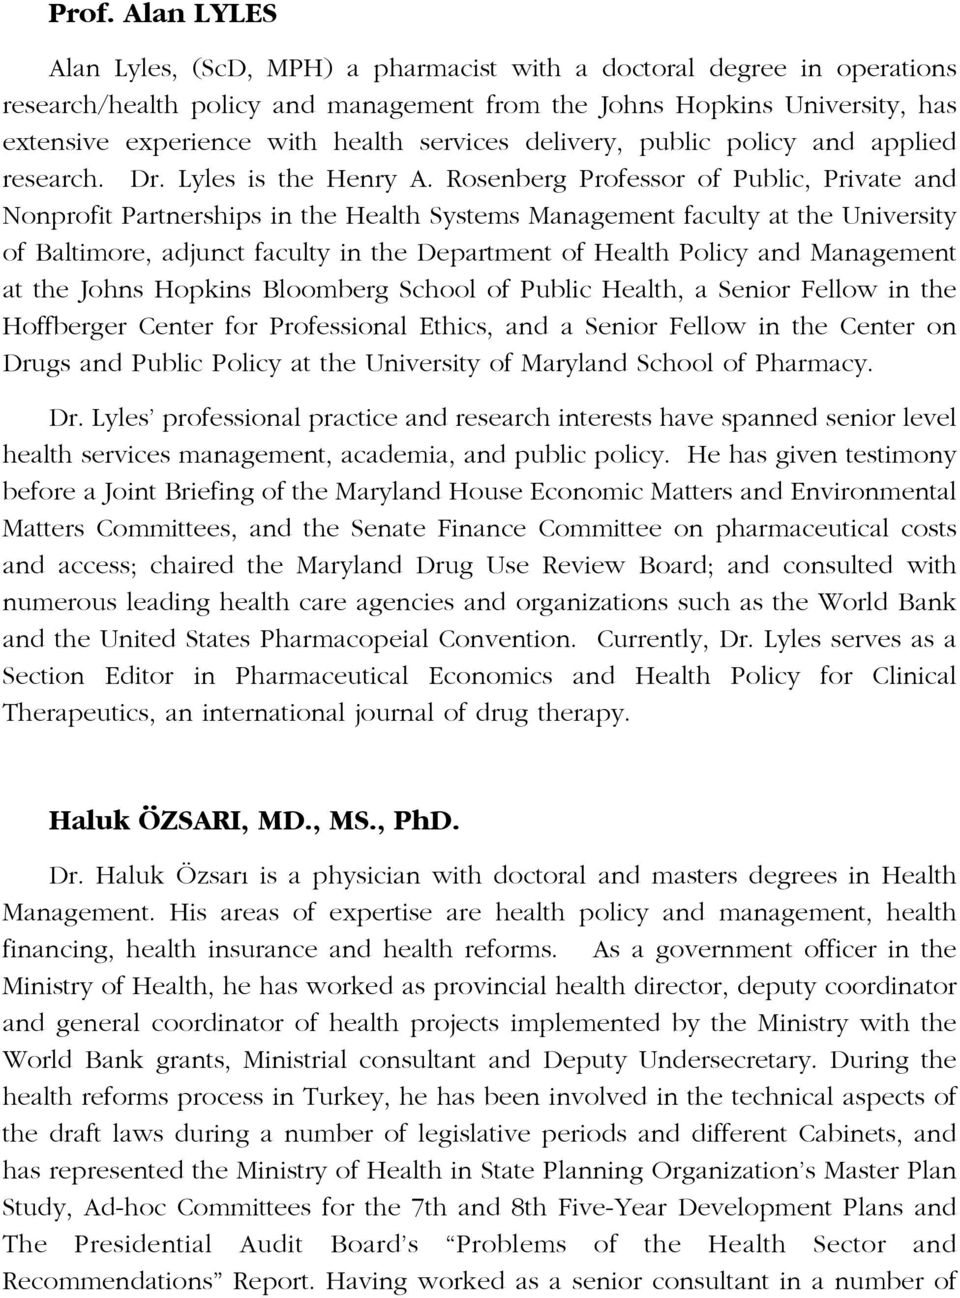 Rosenberg Professor of Public, Private and Nonprofit Partnerships in the Health Systems Management faculty at the University of Baltimore, adjunct faculty in the Department of Health Policy and